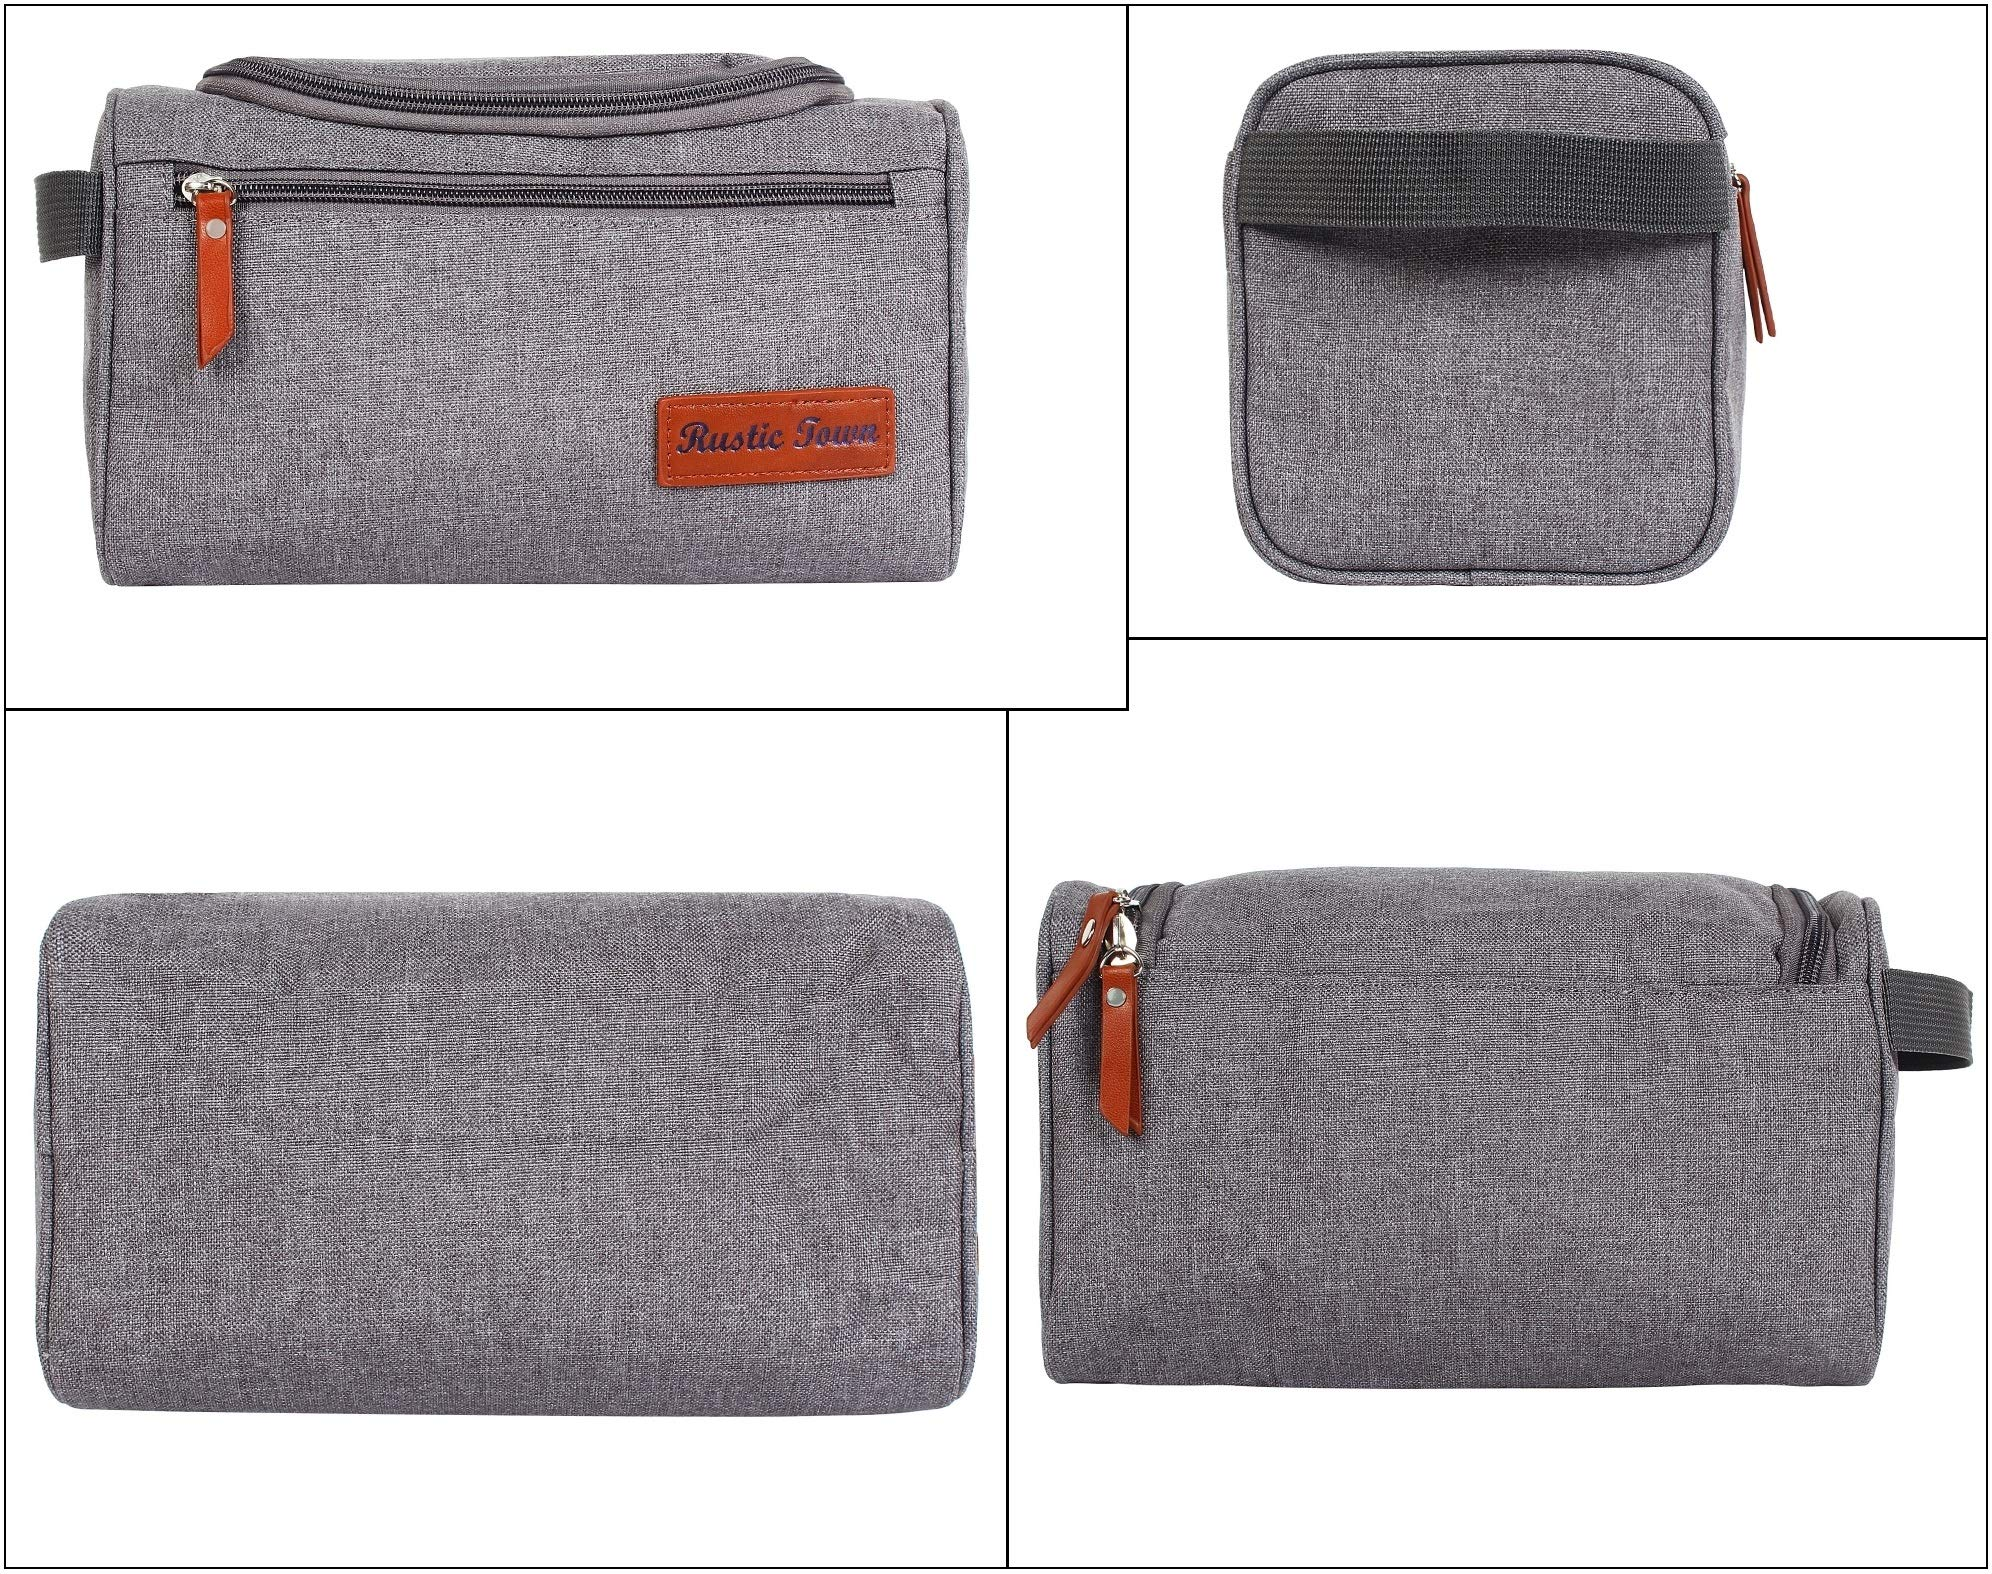 Canvas Toiletry Bag - Hygiene Organizer Dopp/Ditty Kit Cosmetic Bag Travel Shave Kit